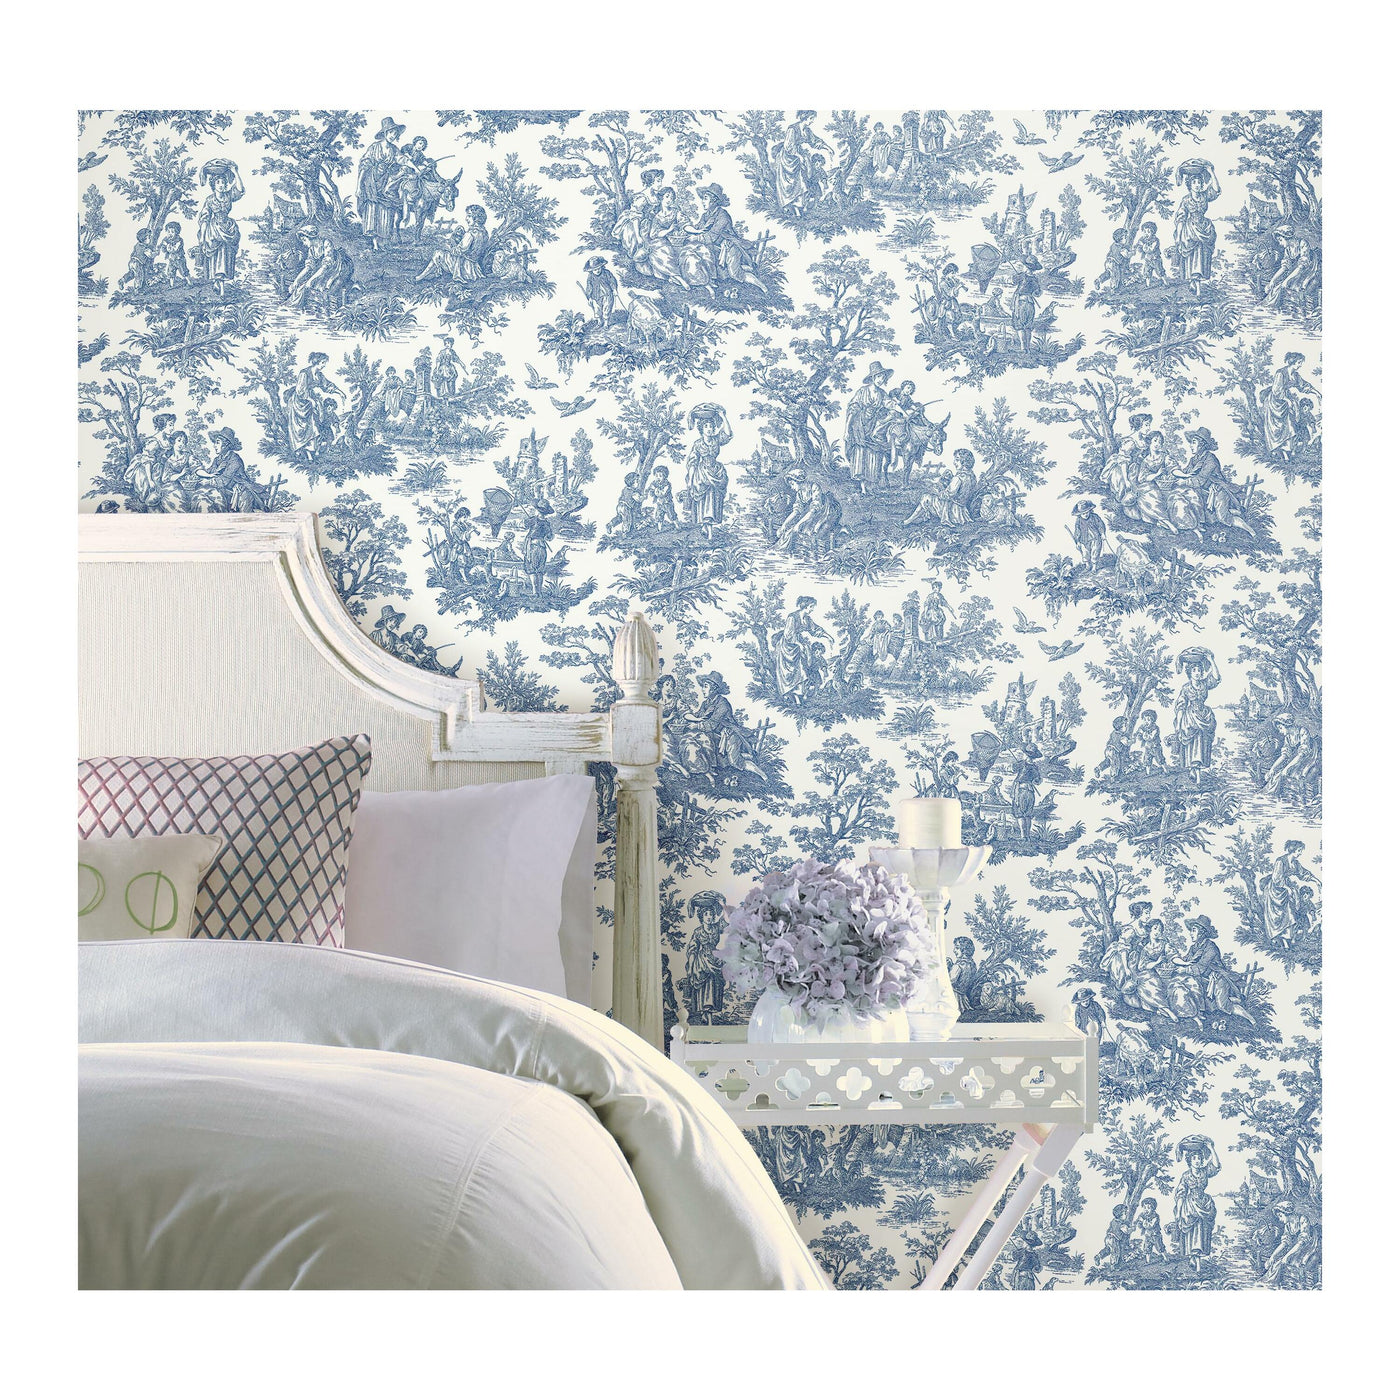 Top 5 Waverly Peel and Stick Wallpaper Patterns